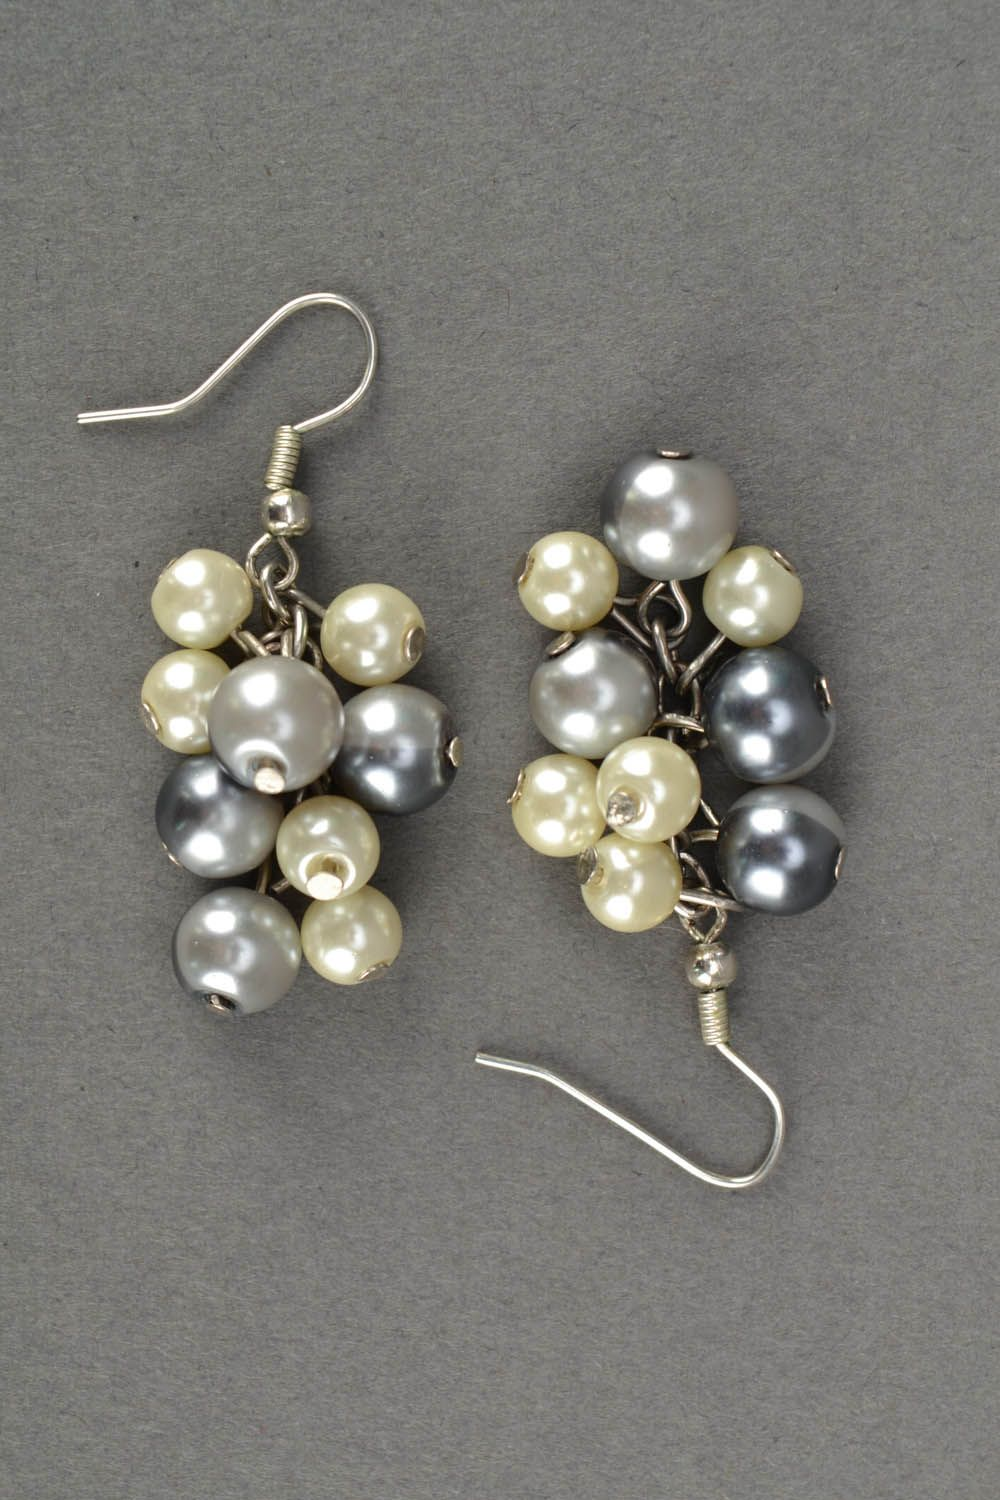 Earrings with charms  photo 3